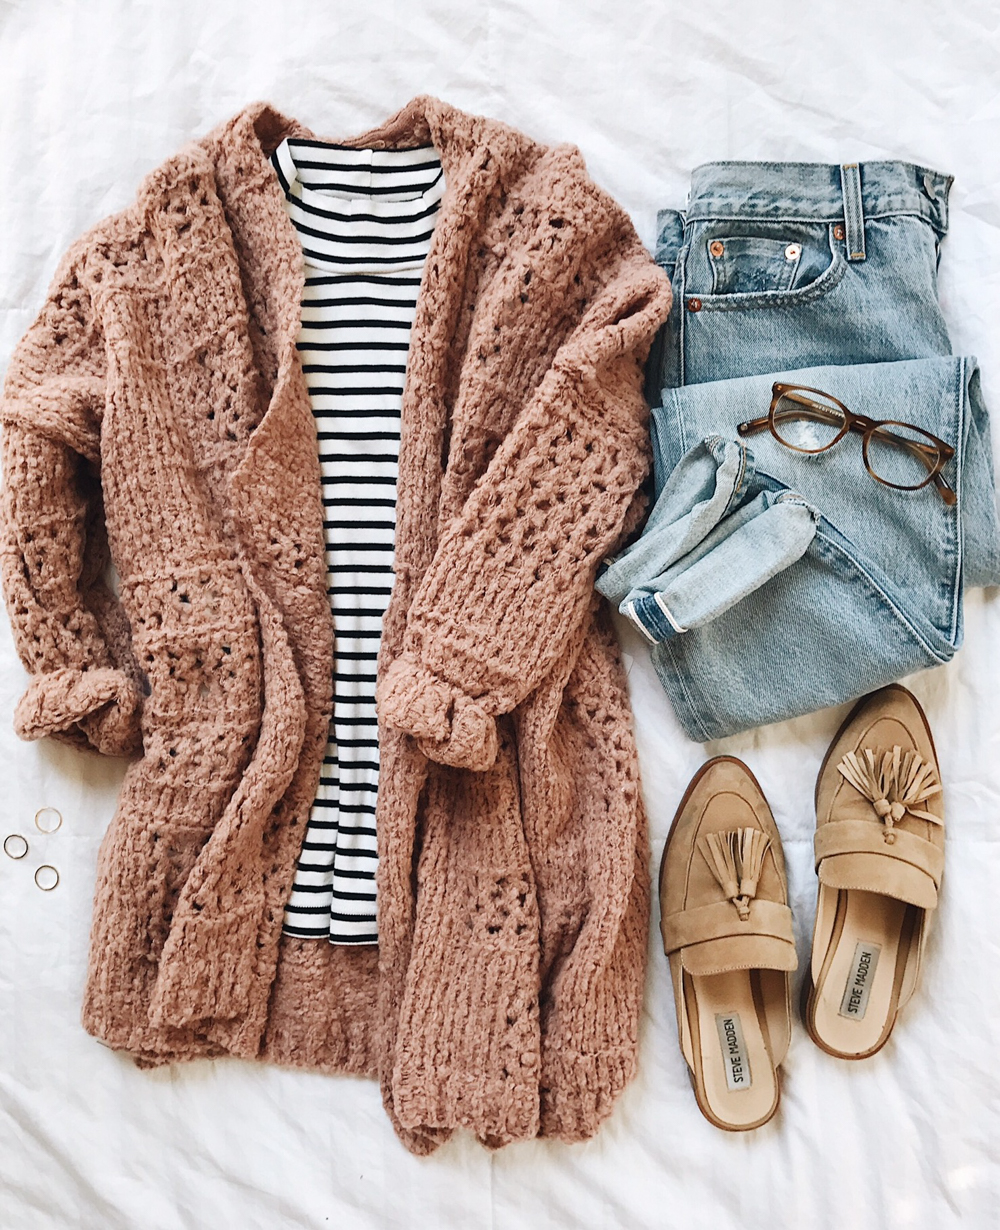 livvyland-blog-olivia-watson-fall-outfit-idea-blush-pink-free-people-cardigan-striped-tee-backless-loafer-slides